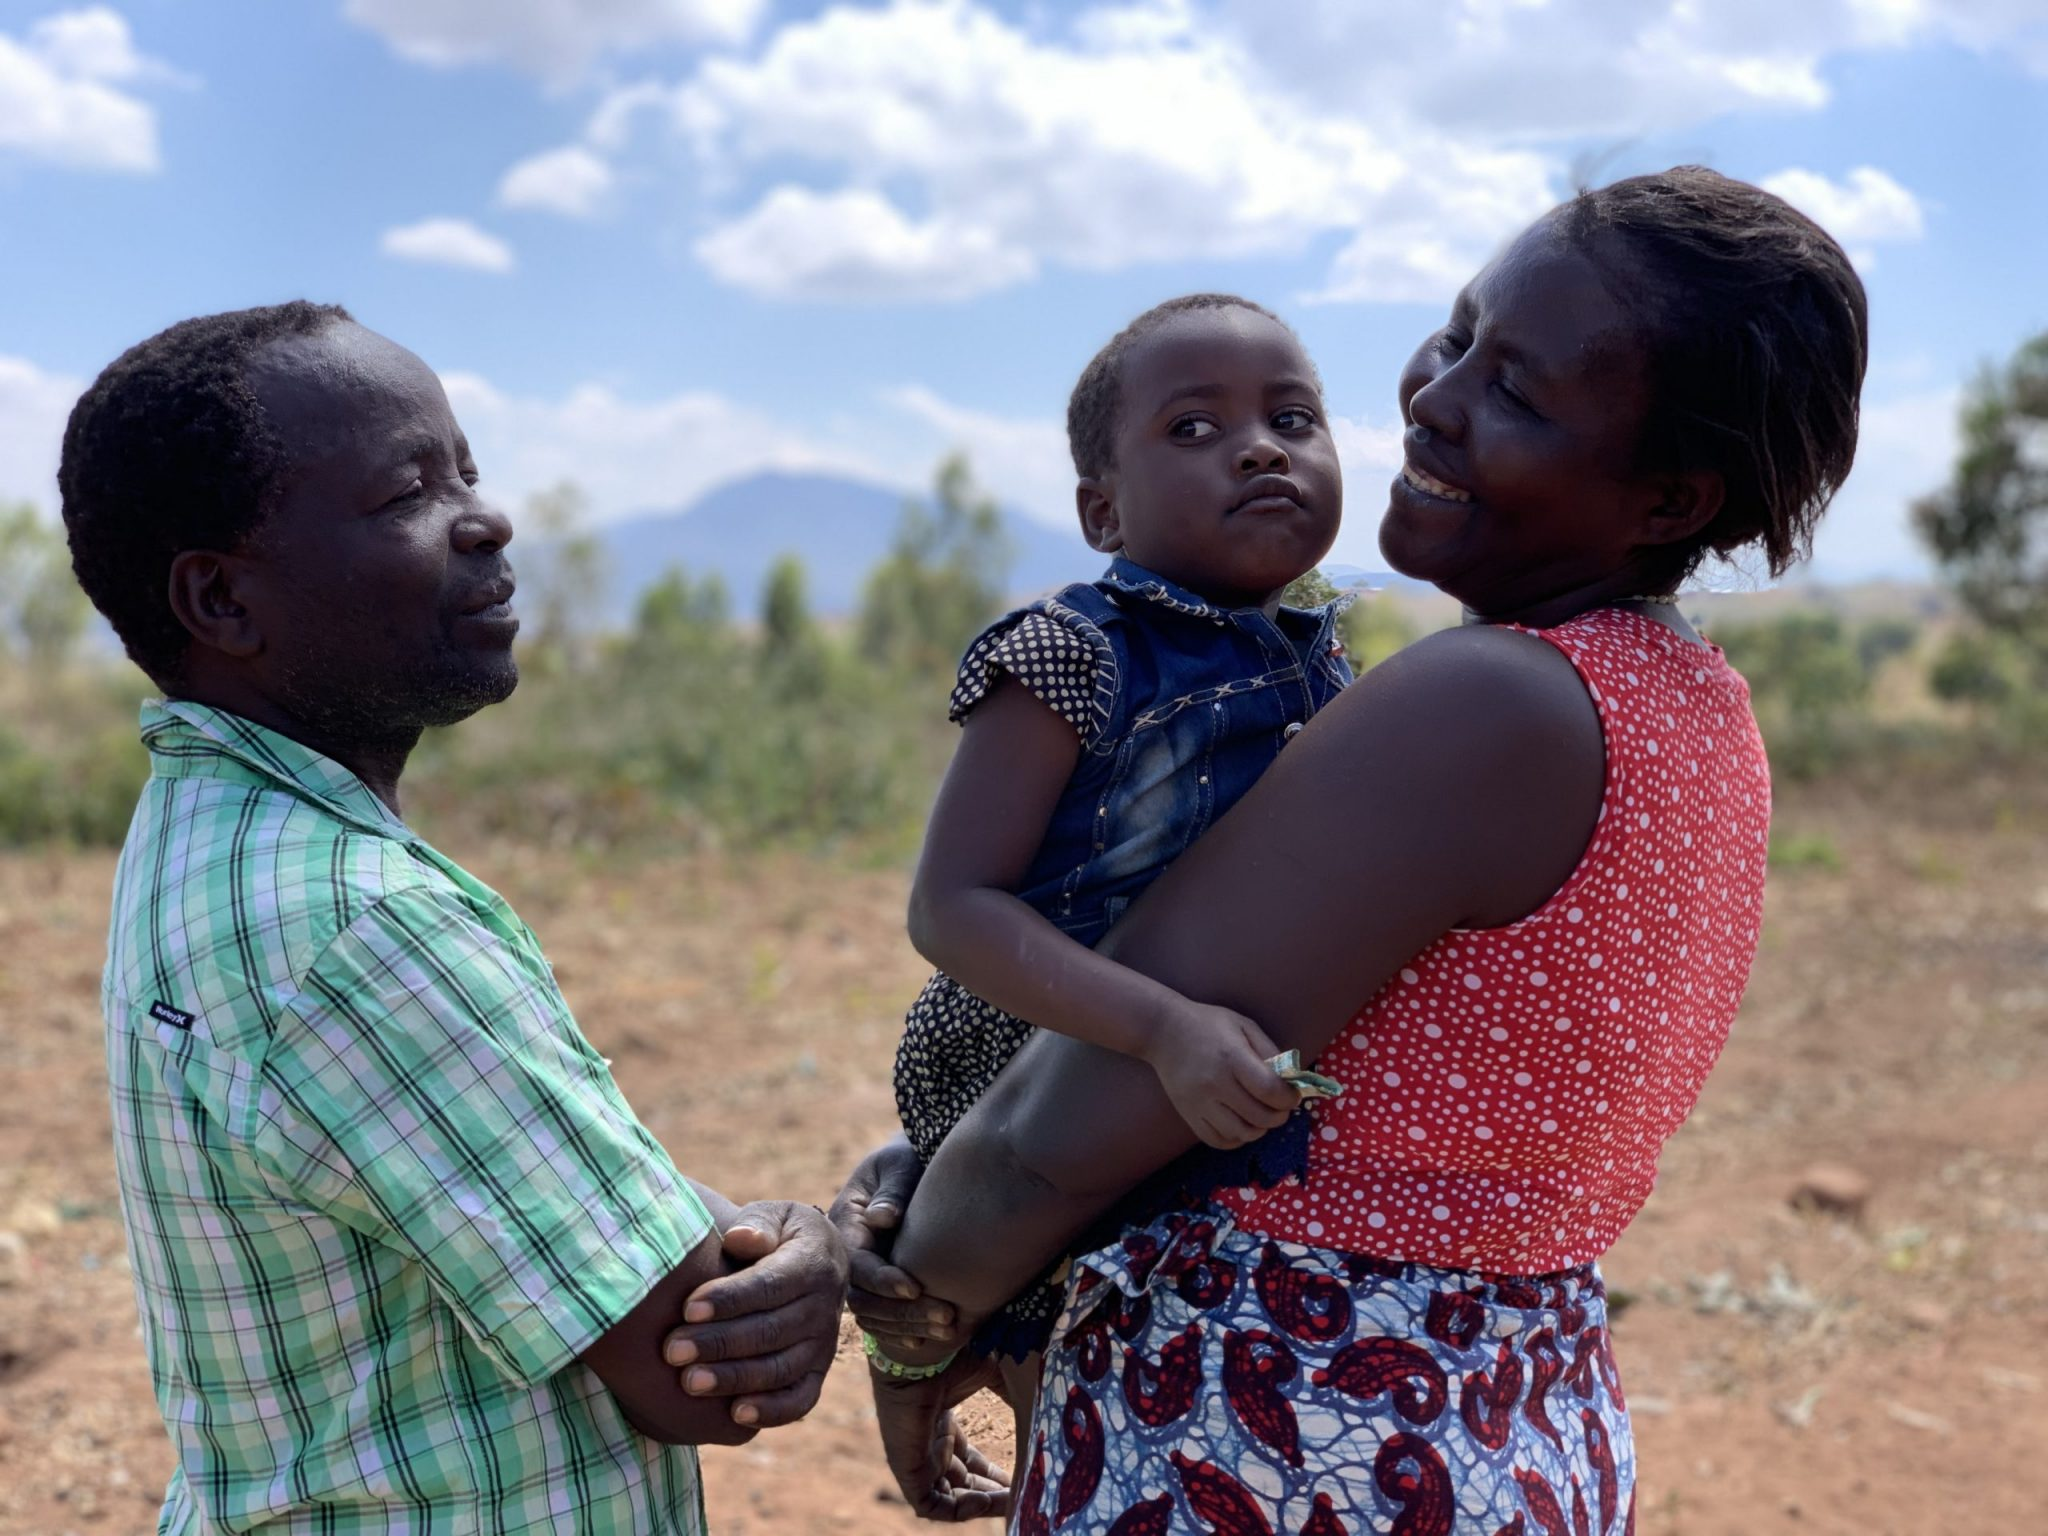 """A still from """"The Ants and the Grasshopper"""". Outdoors medium shot of Anita, the film's Malawian protagonist, holding one of her children in her arms and smiling at her husband in a dry field under a bright blue sky with a few white clouds."""